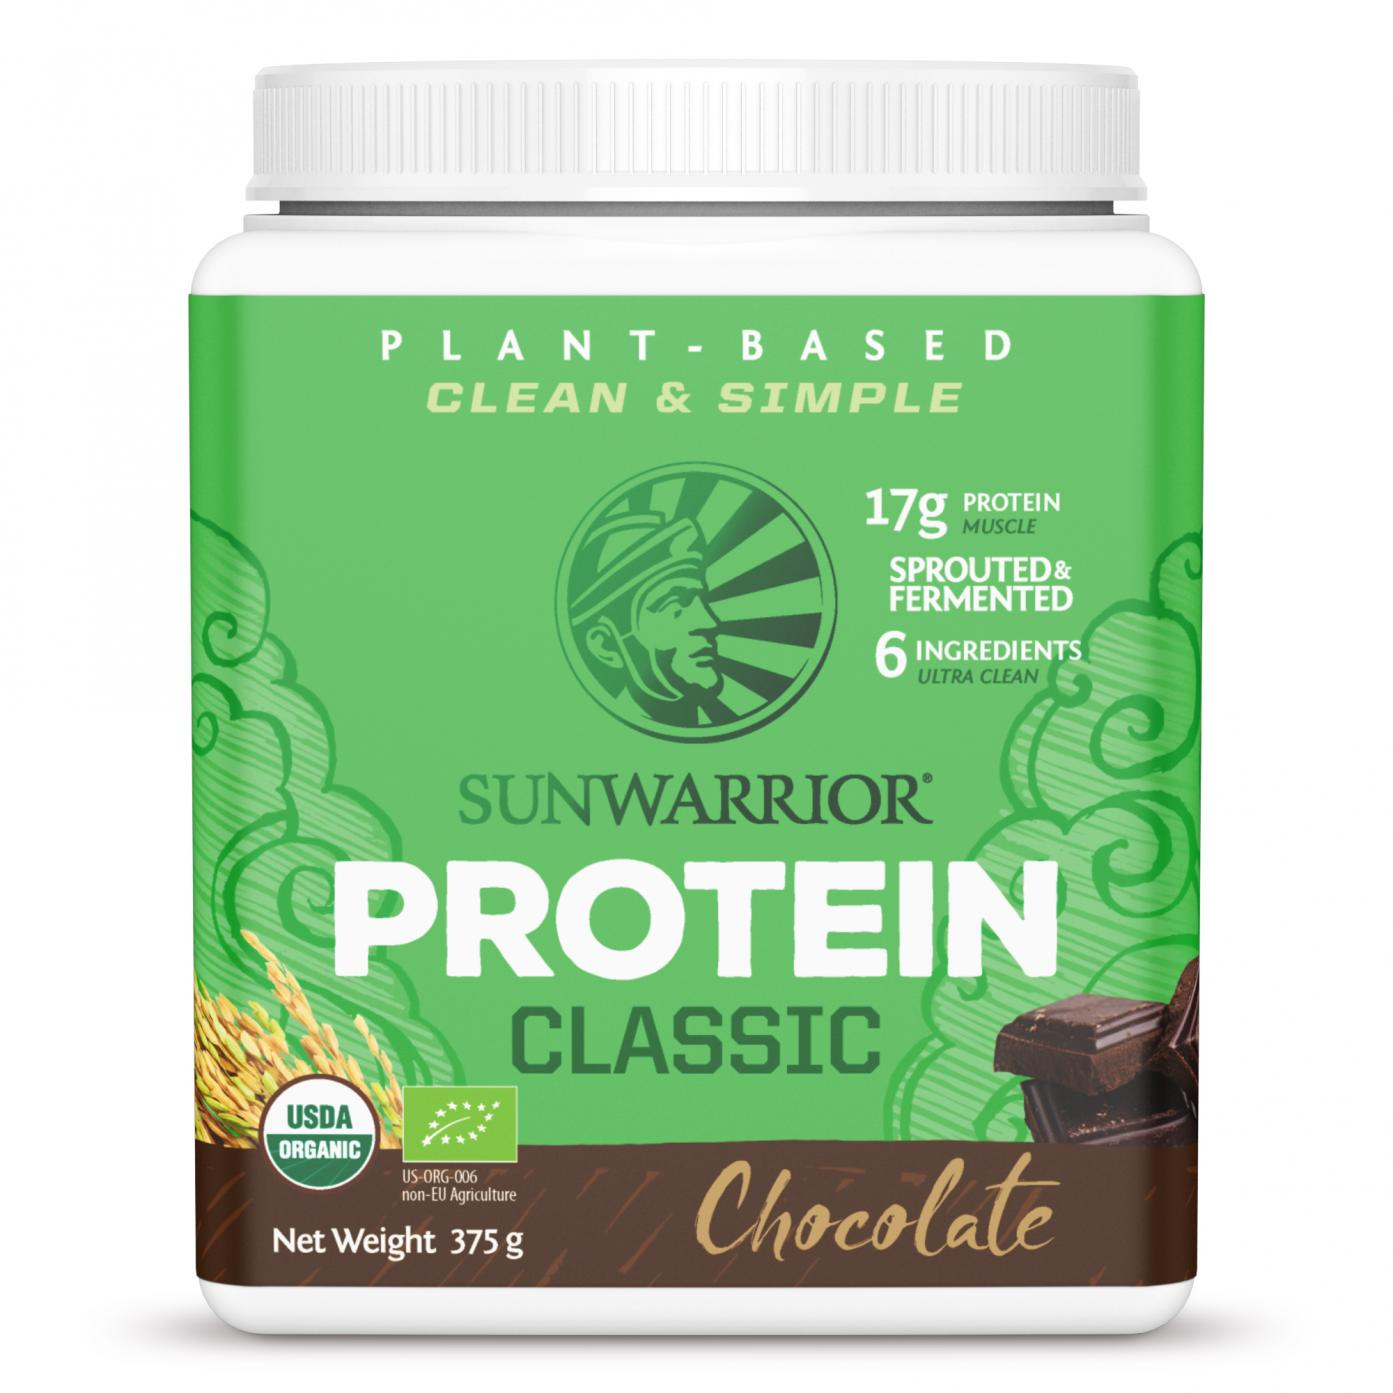 Protein Classic Chocolate 375g (Green Tub) (Currently Unavailable)